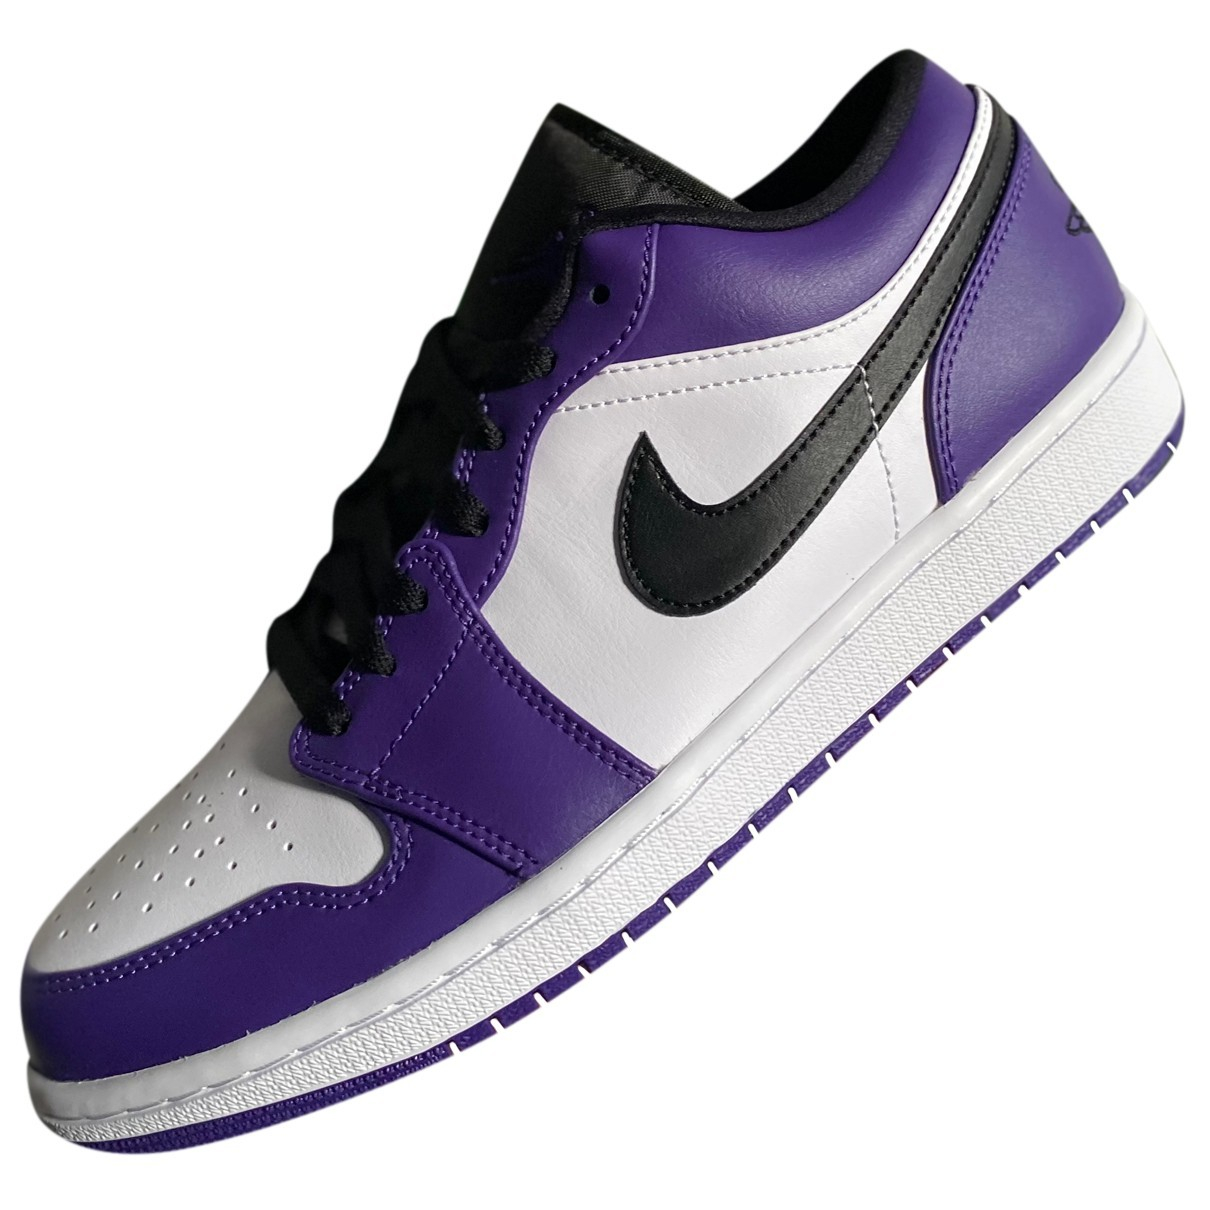 Jordan Air Jordan 1  Purple Leather Trainers for Men 43 EU